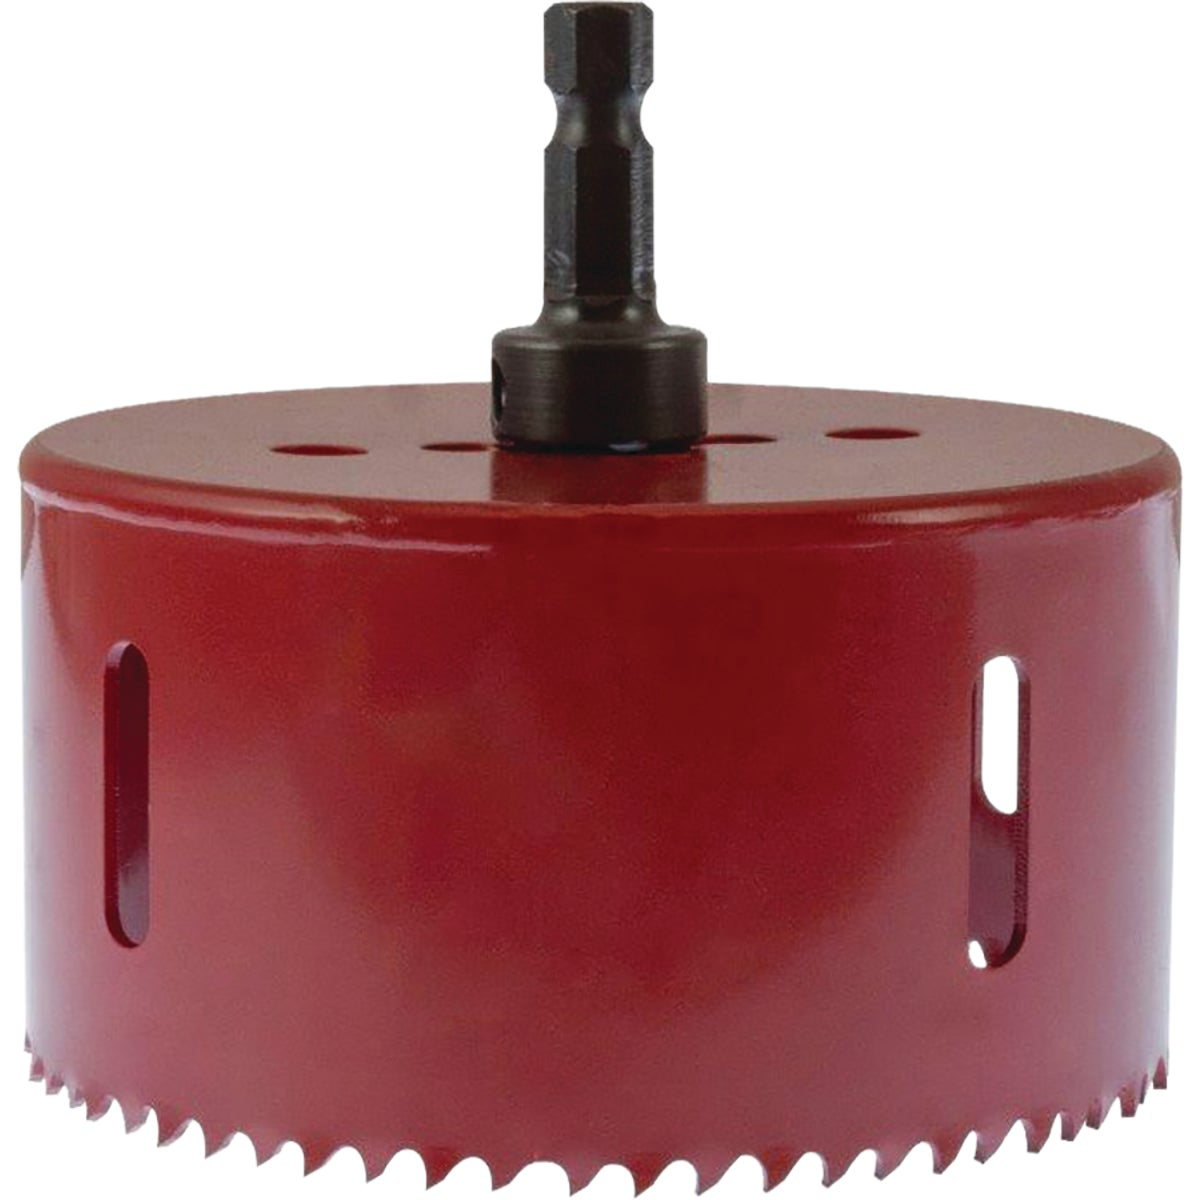 "3-1/2"" HOLE SAW - 336764 by M K Morse Co"